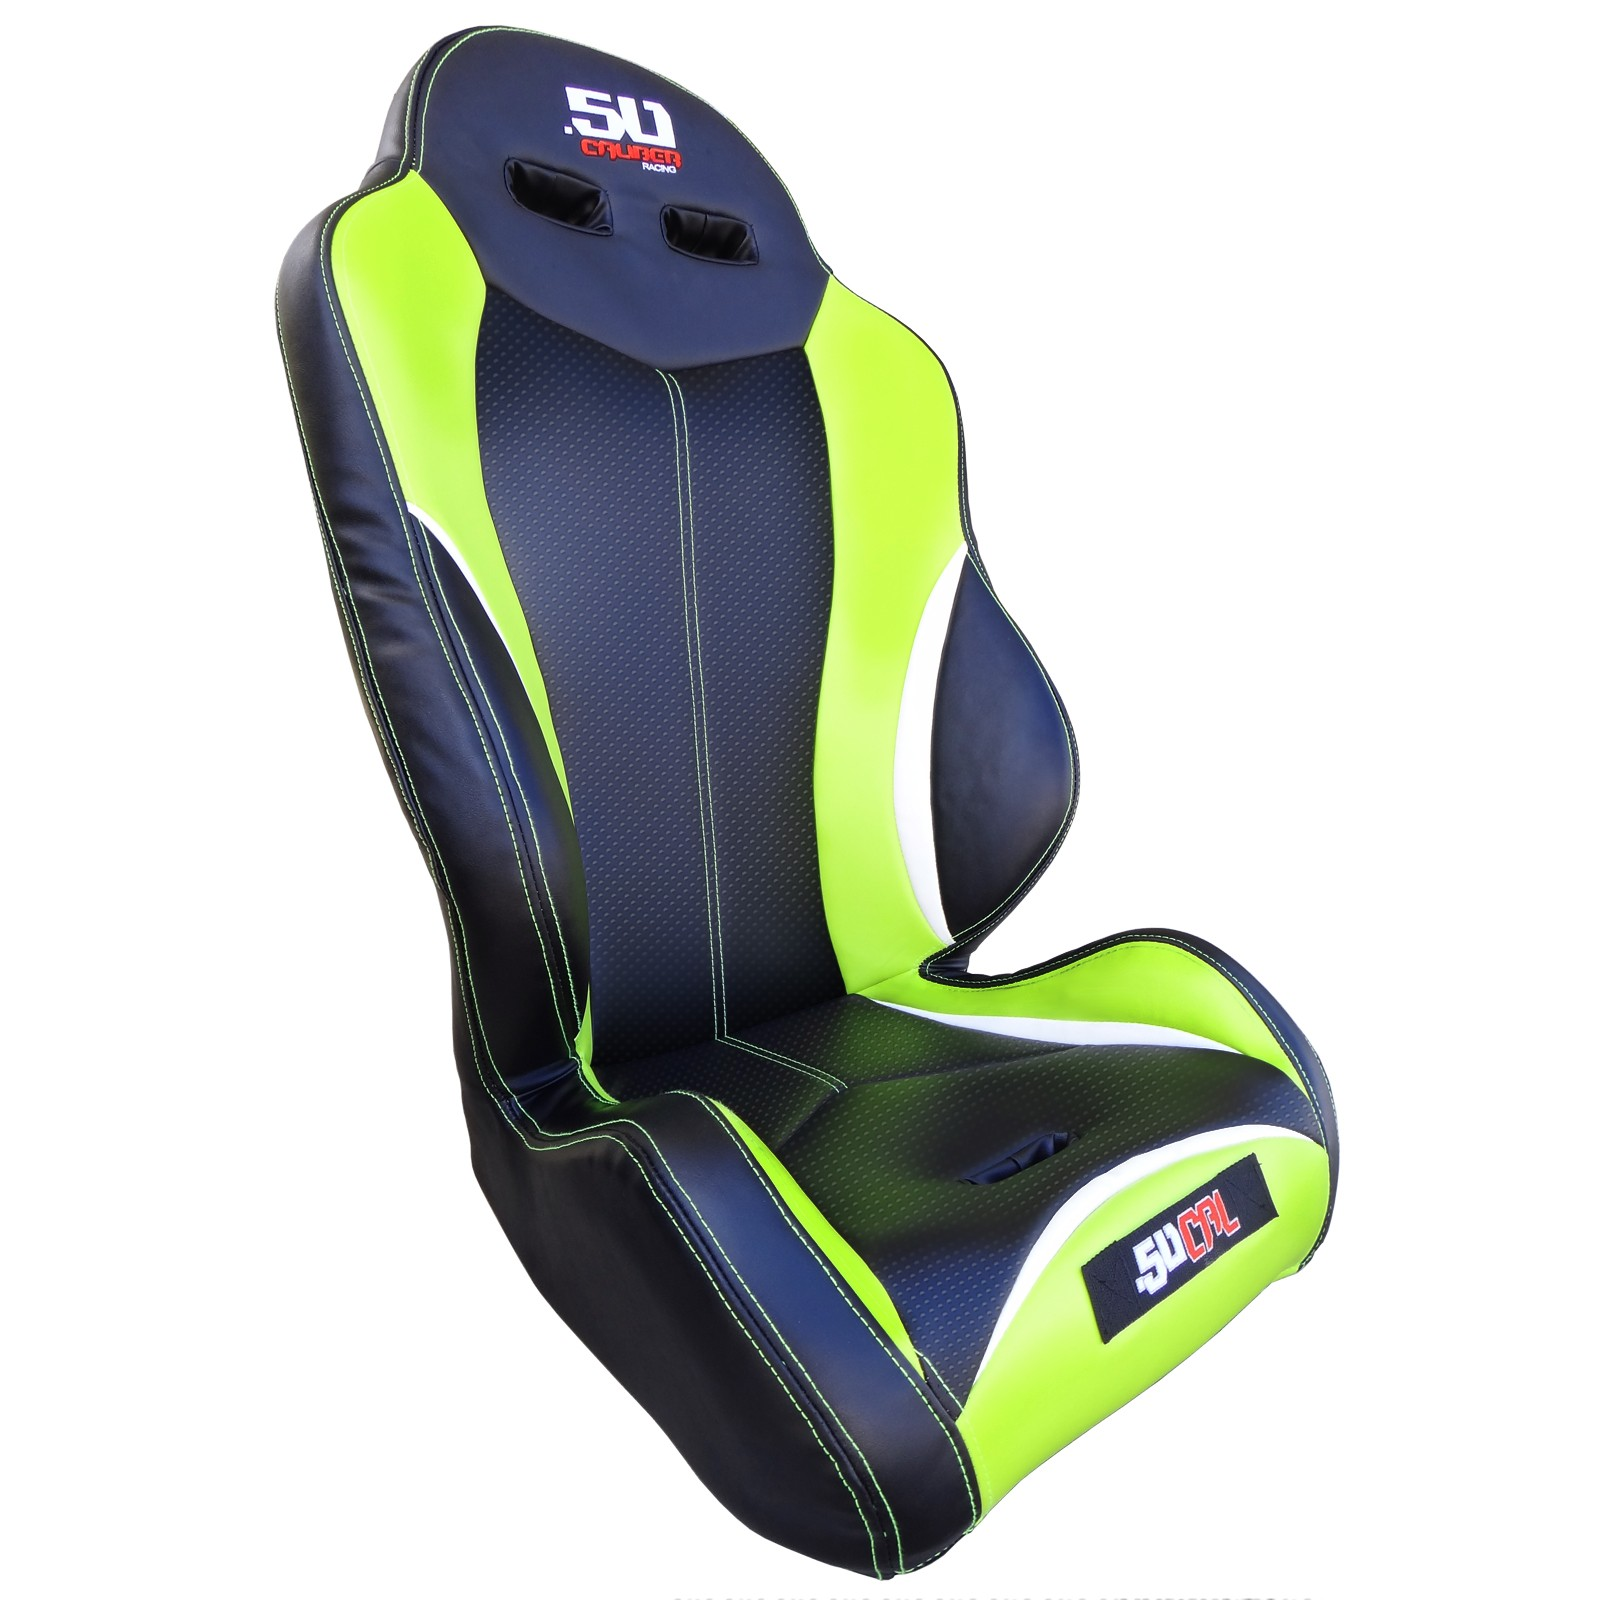 Custom Off Road seats and bucket seats for your UTV